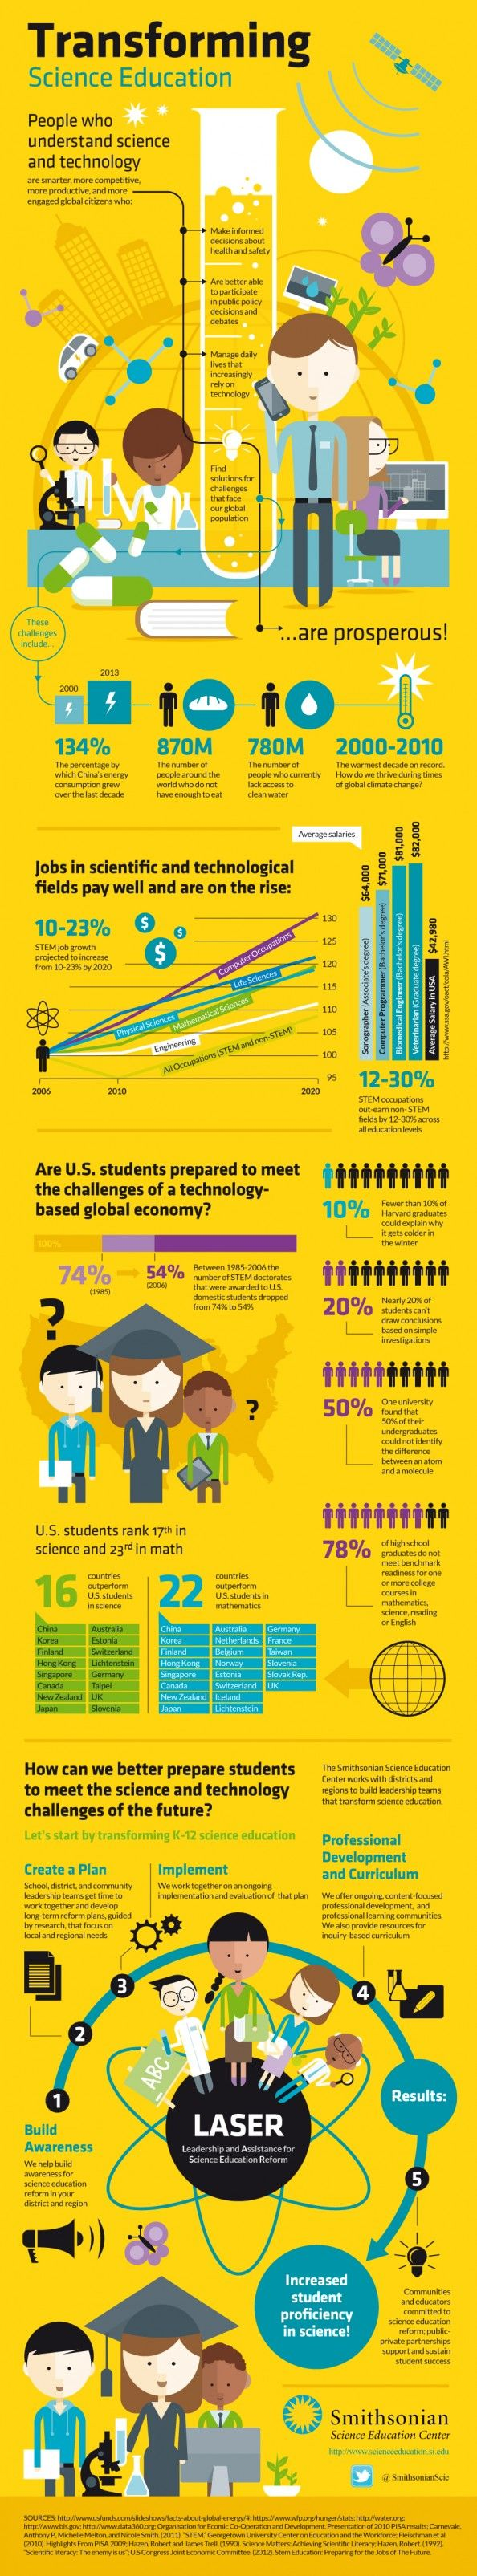 Transforming Science Education Infographic- stats are American but I'm sure the trends are true in the UK too. I'll have to check!